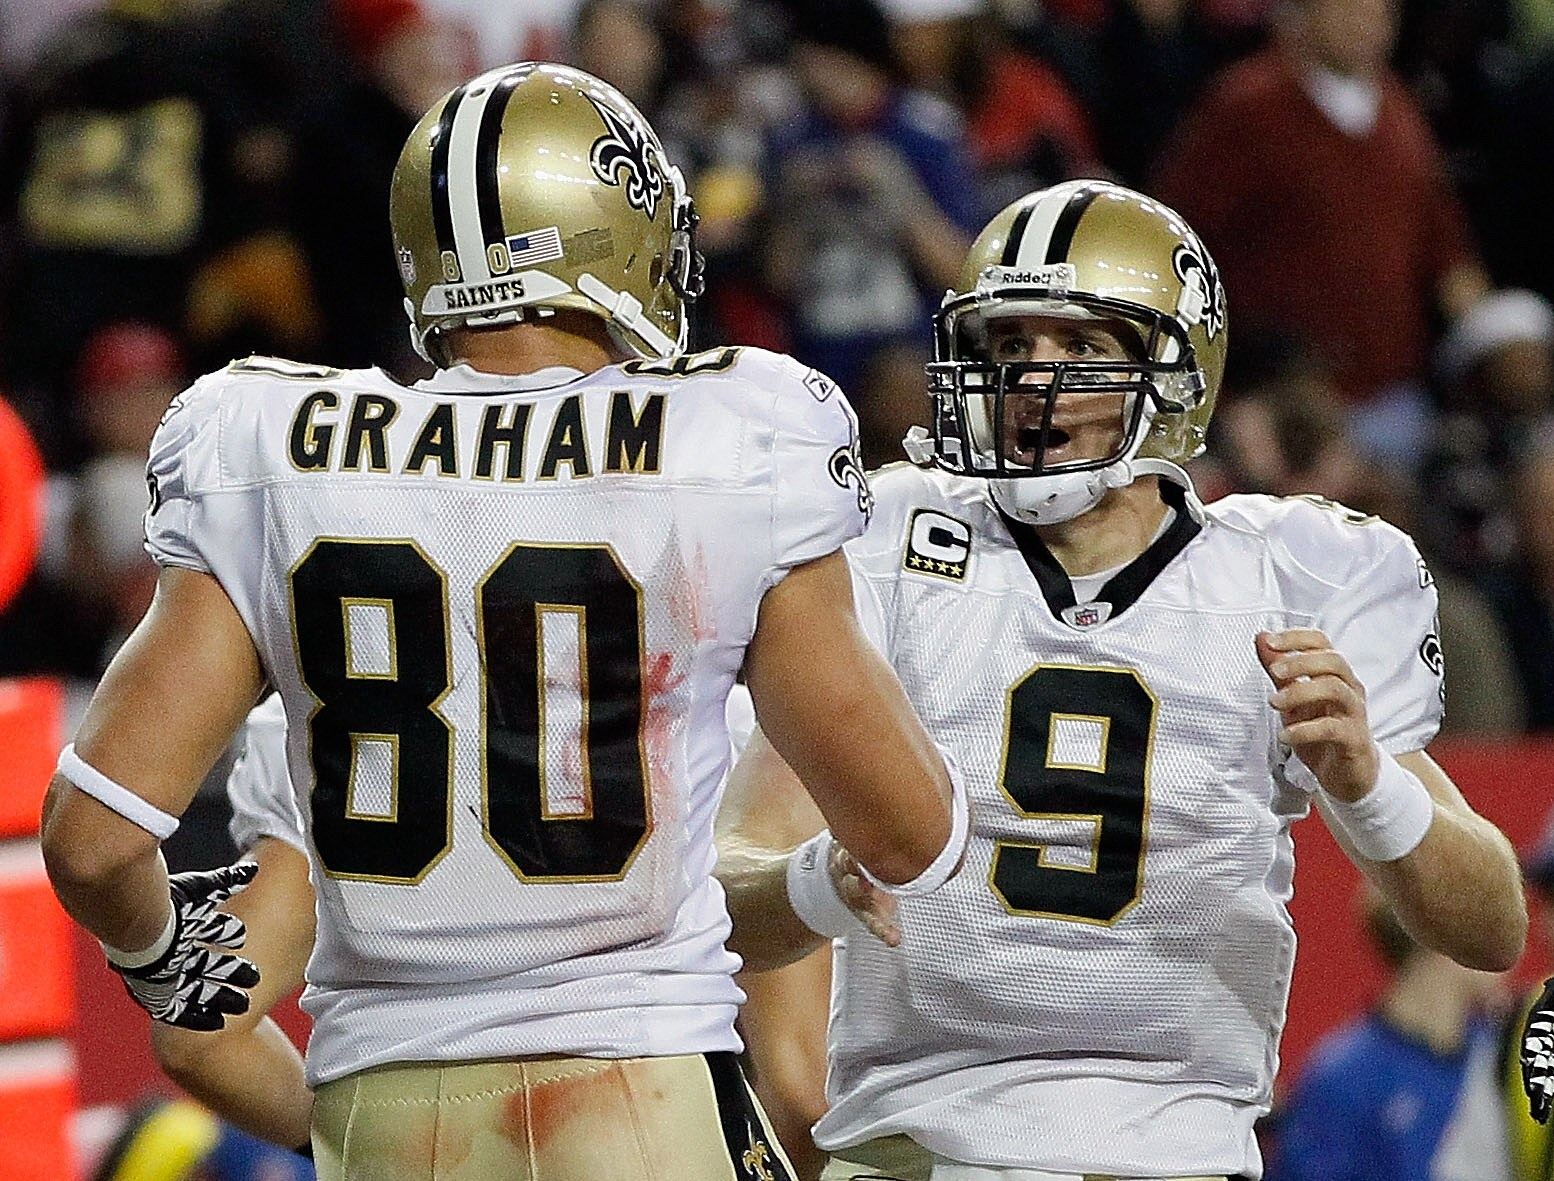 Week 1 Brees and Graham